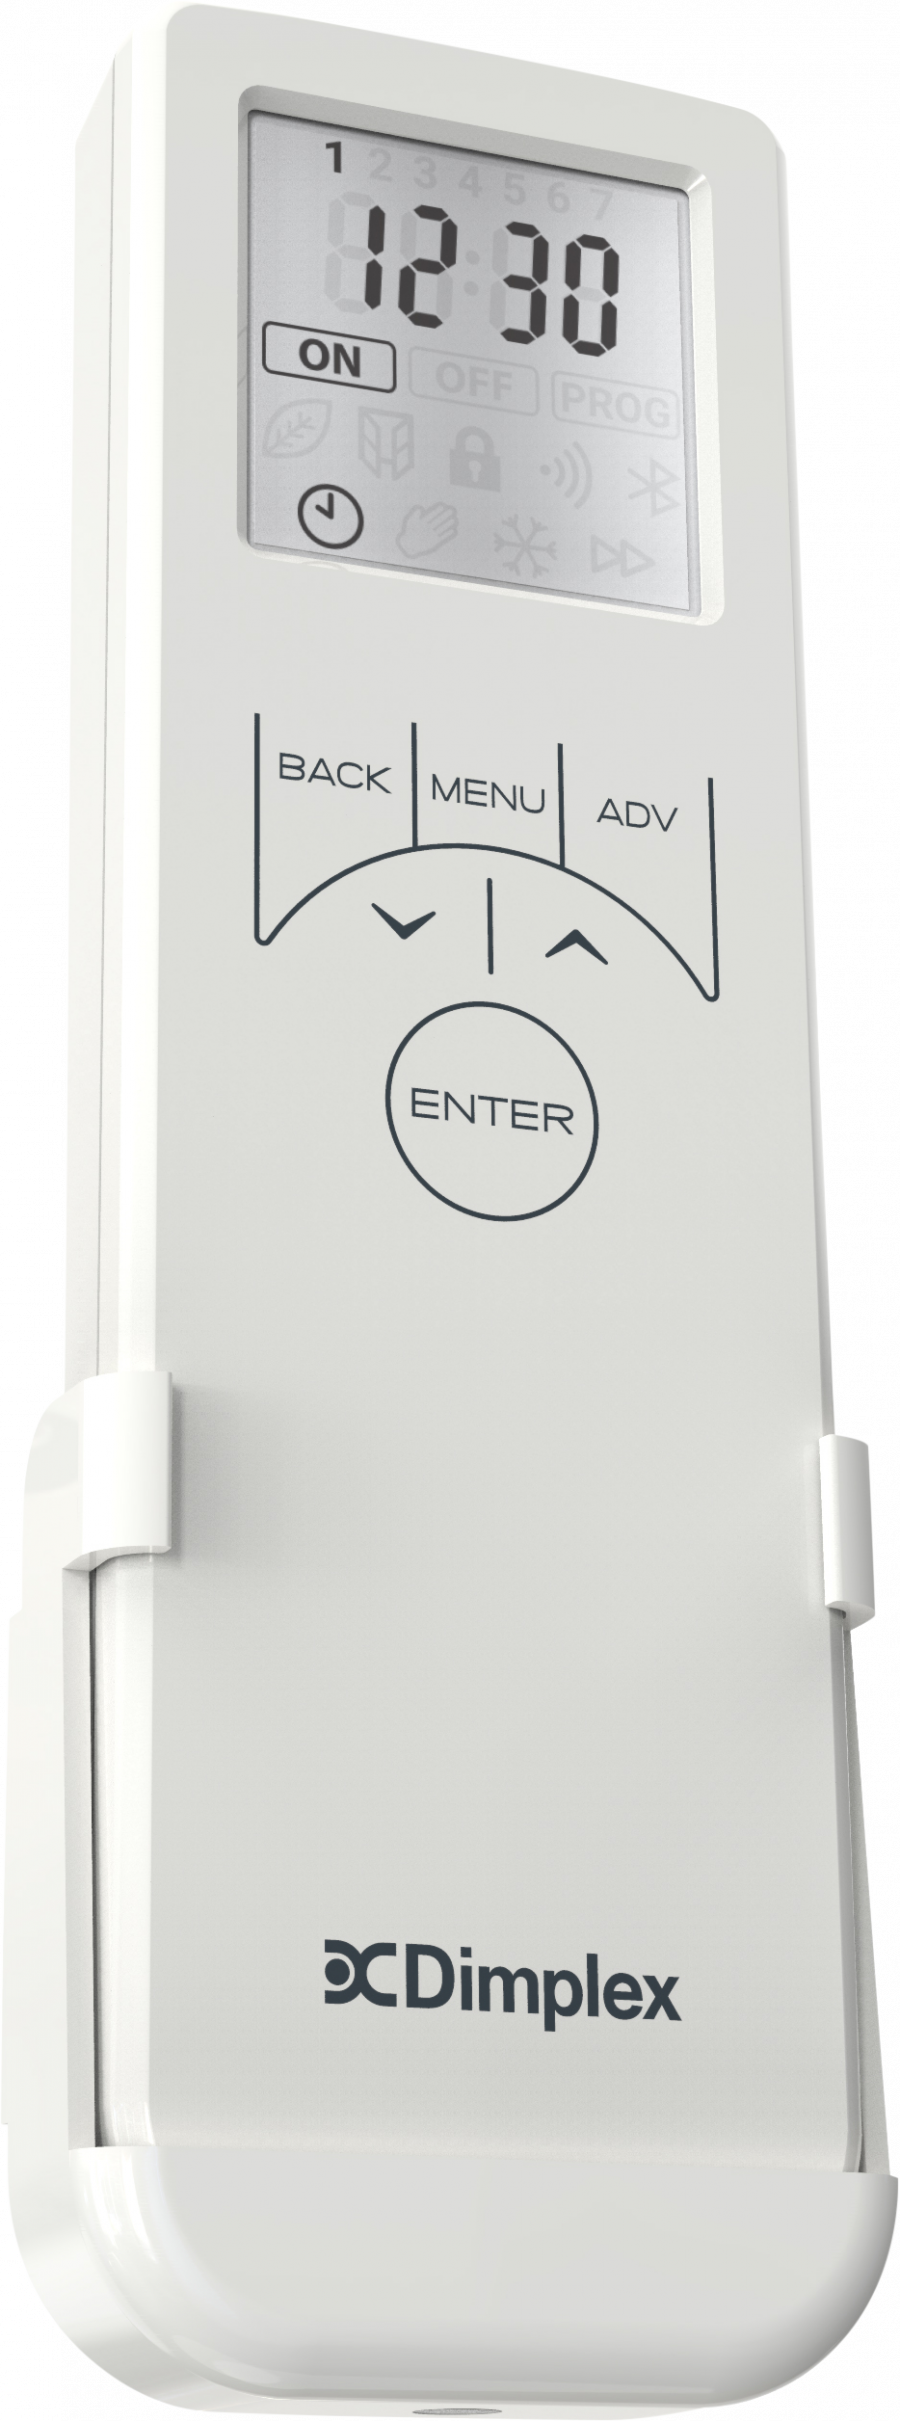 UNIVERSAL REMOTE_White2.png